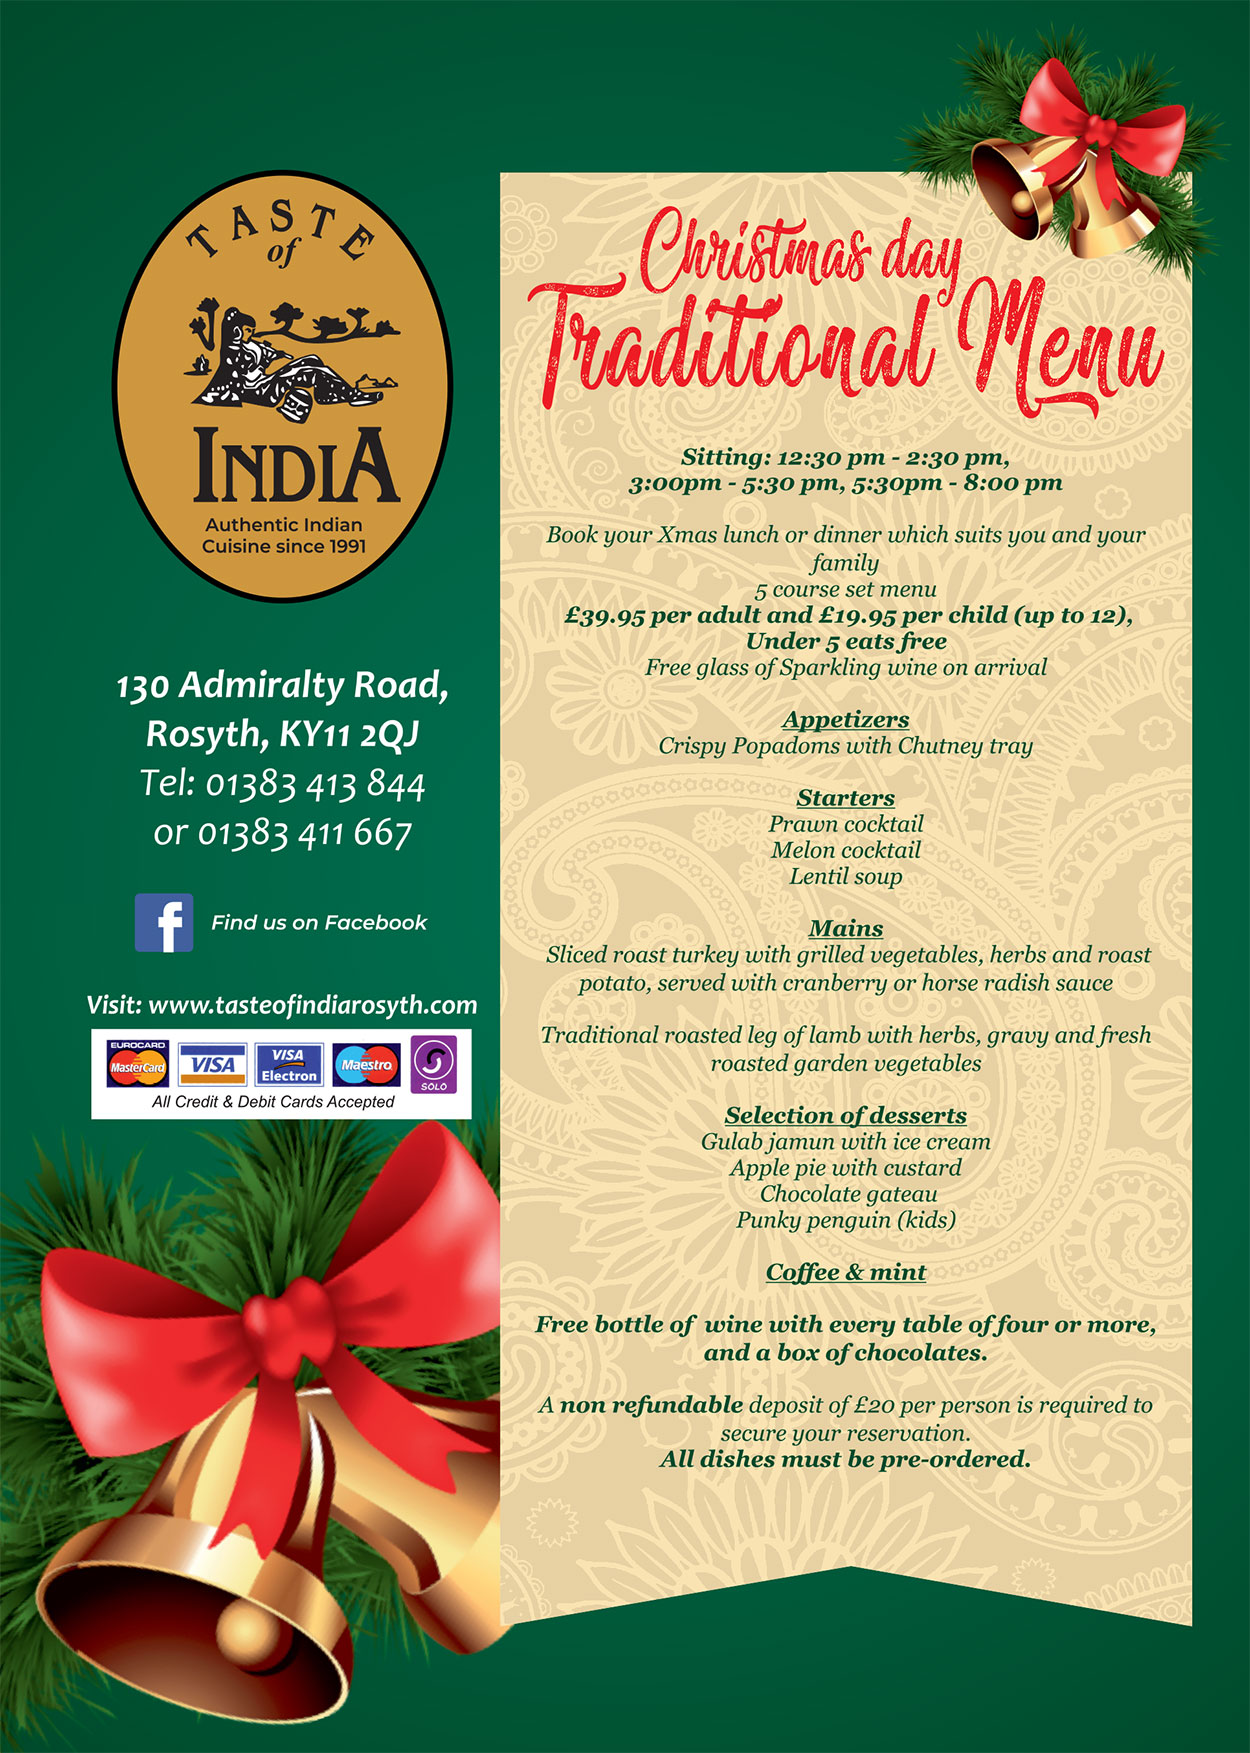 Christmas Traditional Menu 2019